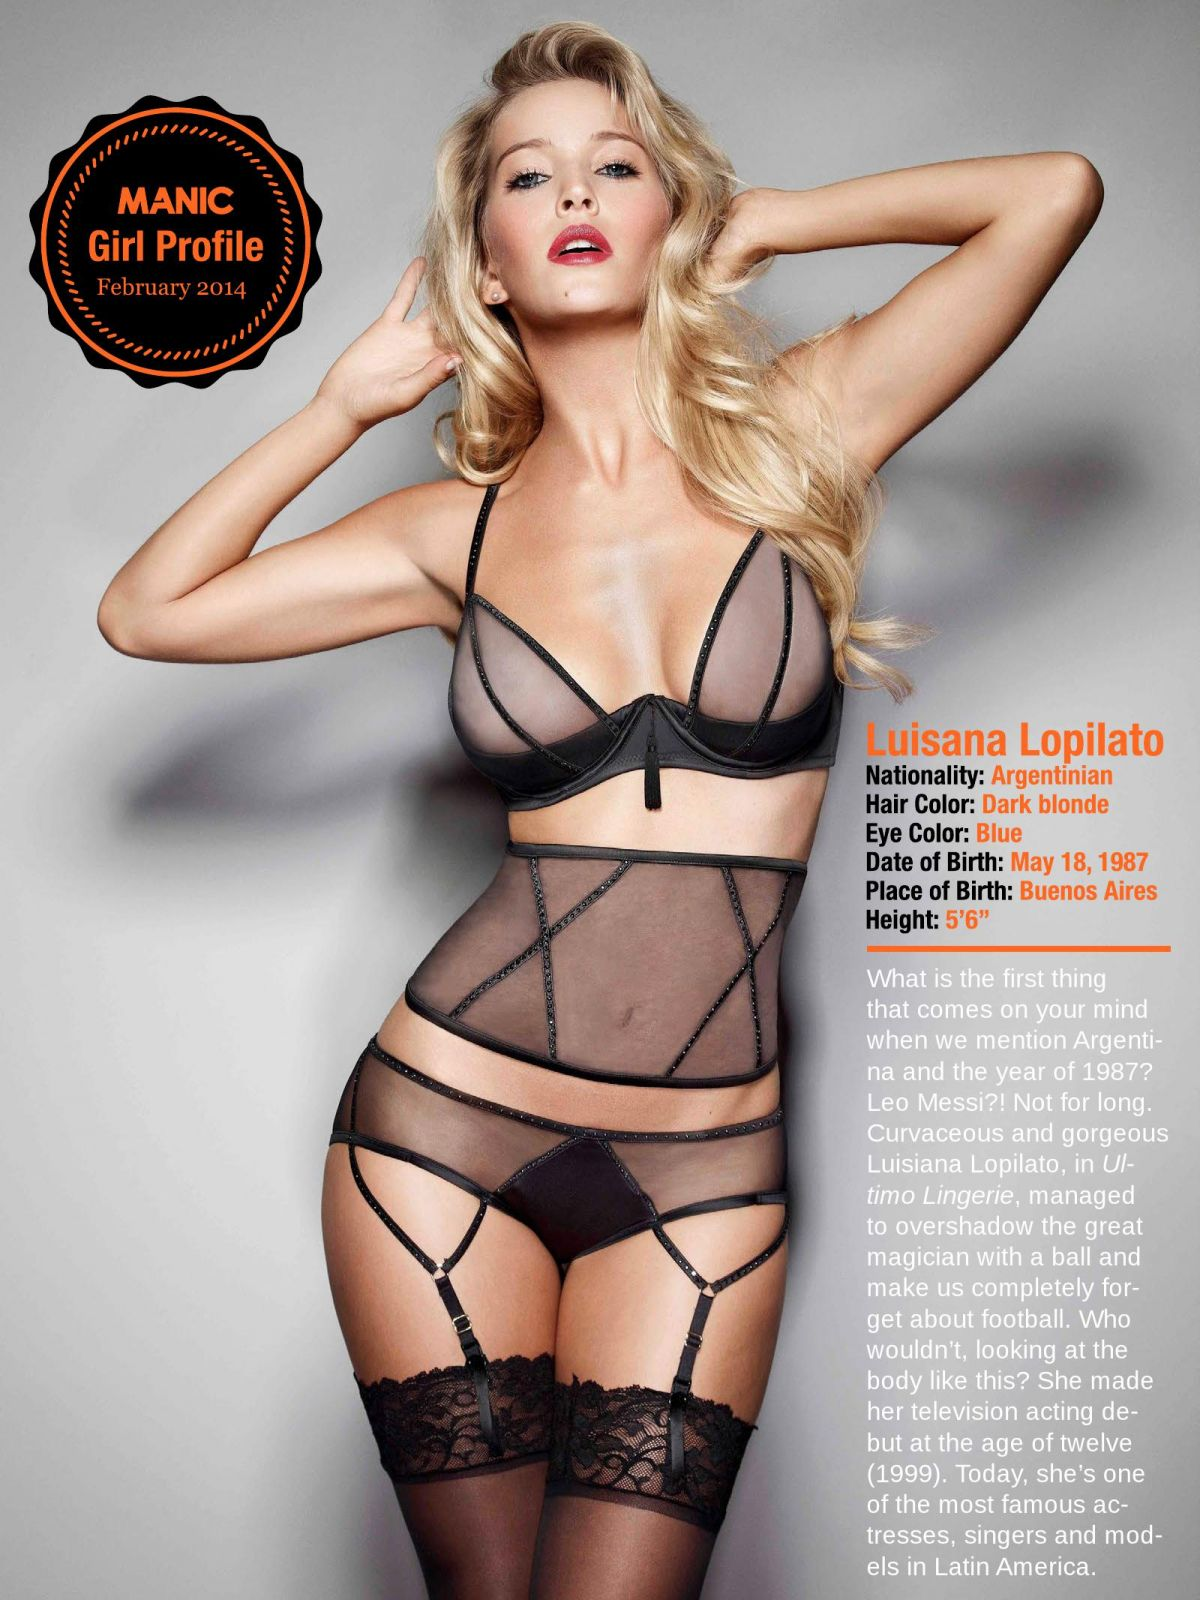 LUISANA LOPILATO in Manic Magazine, February 2014 Issue